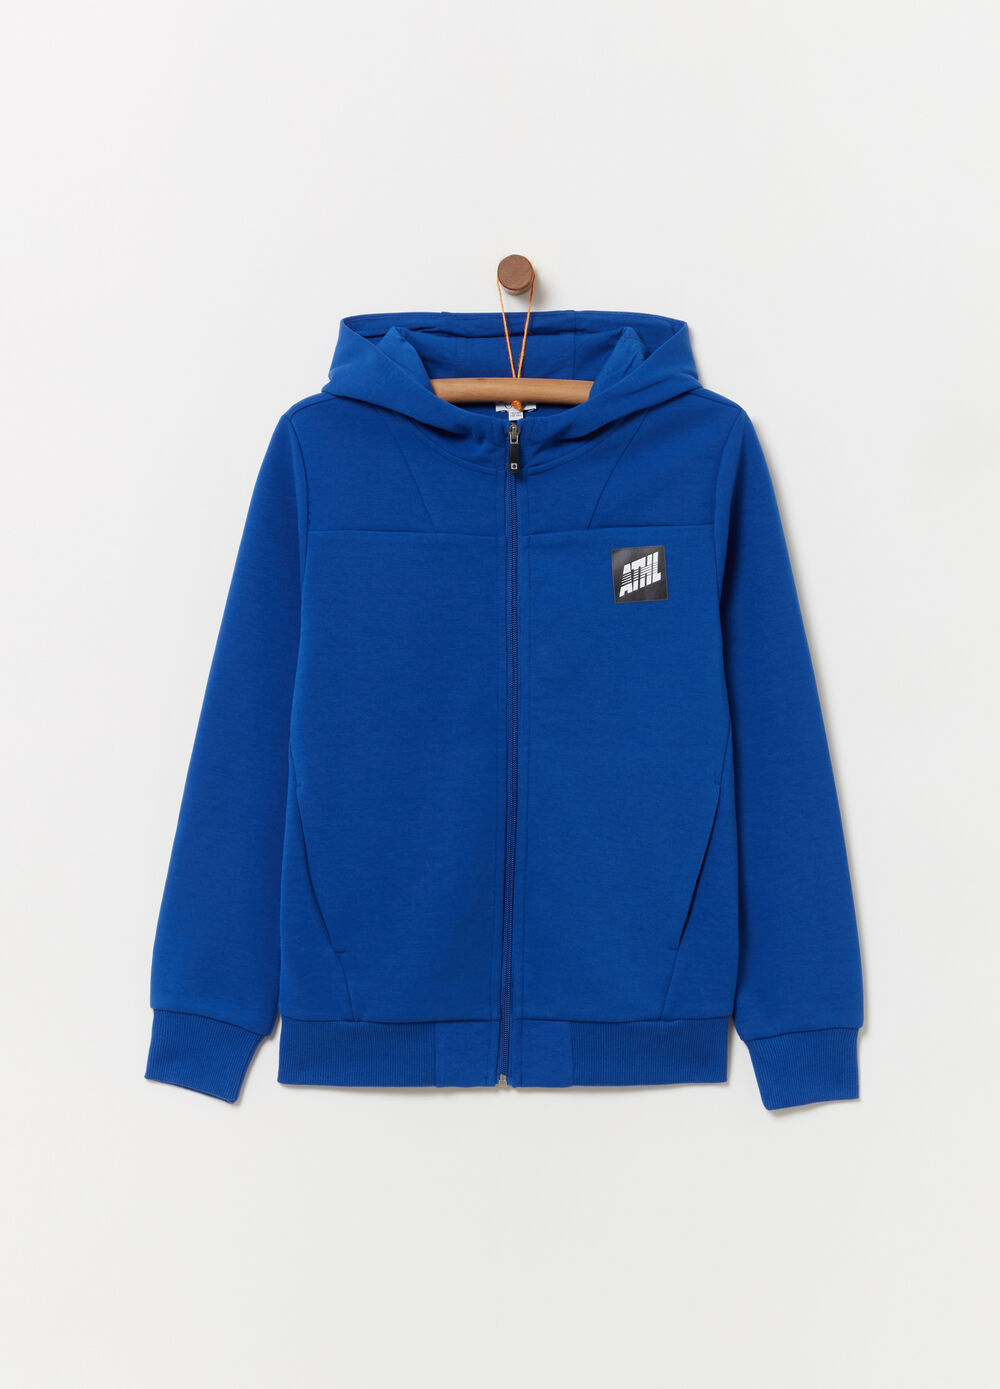 Interlock sweatshirt with hood and print